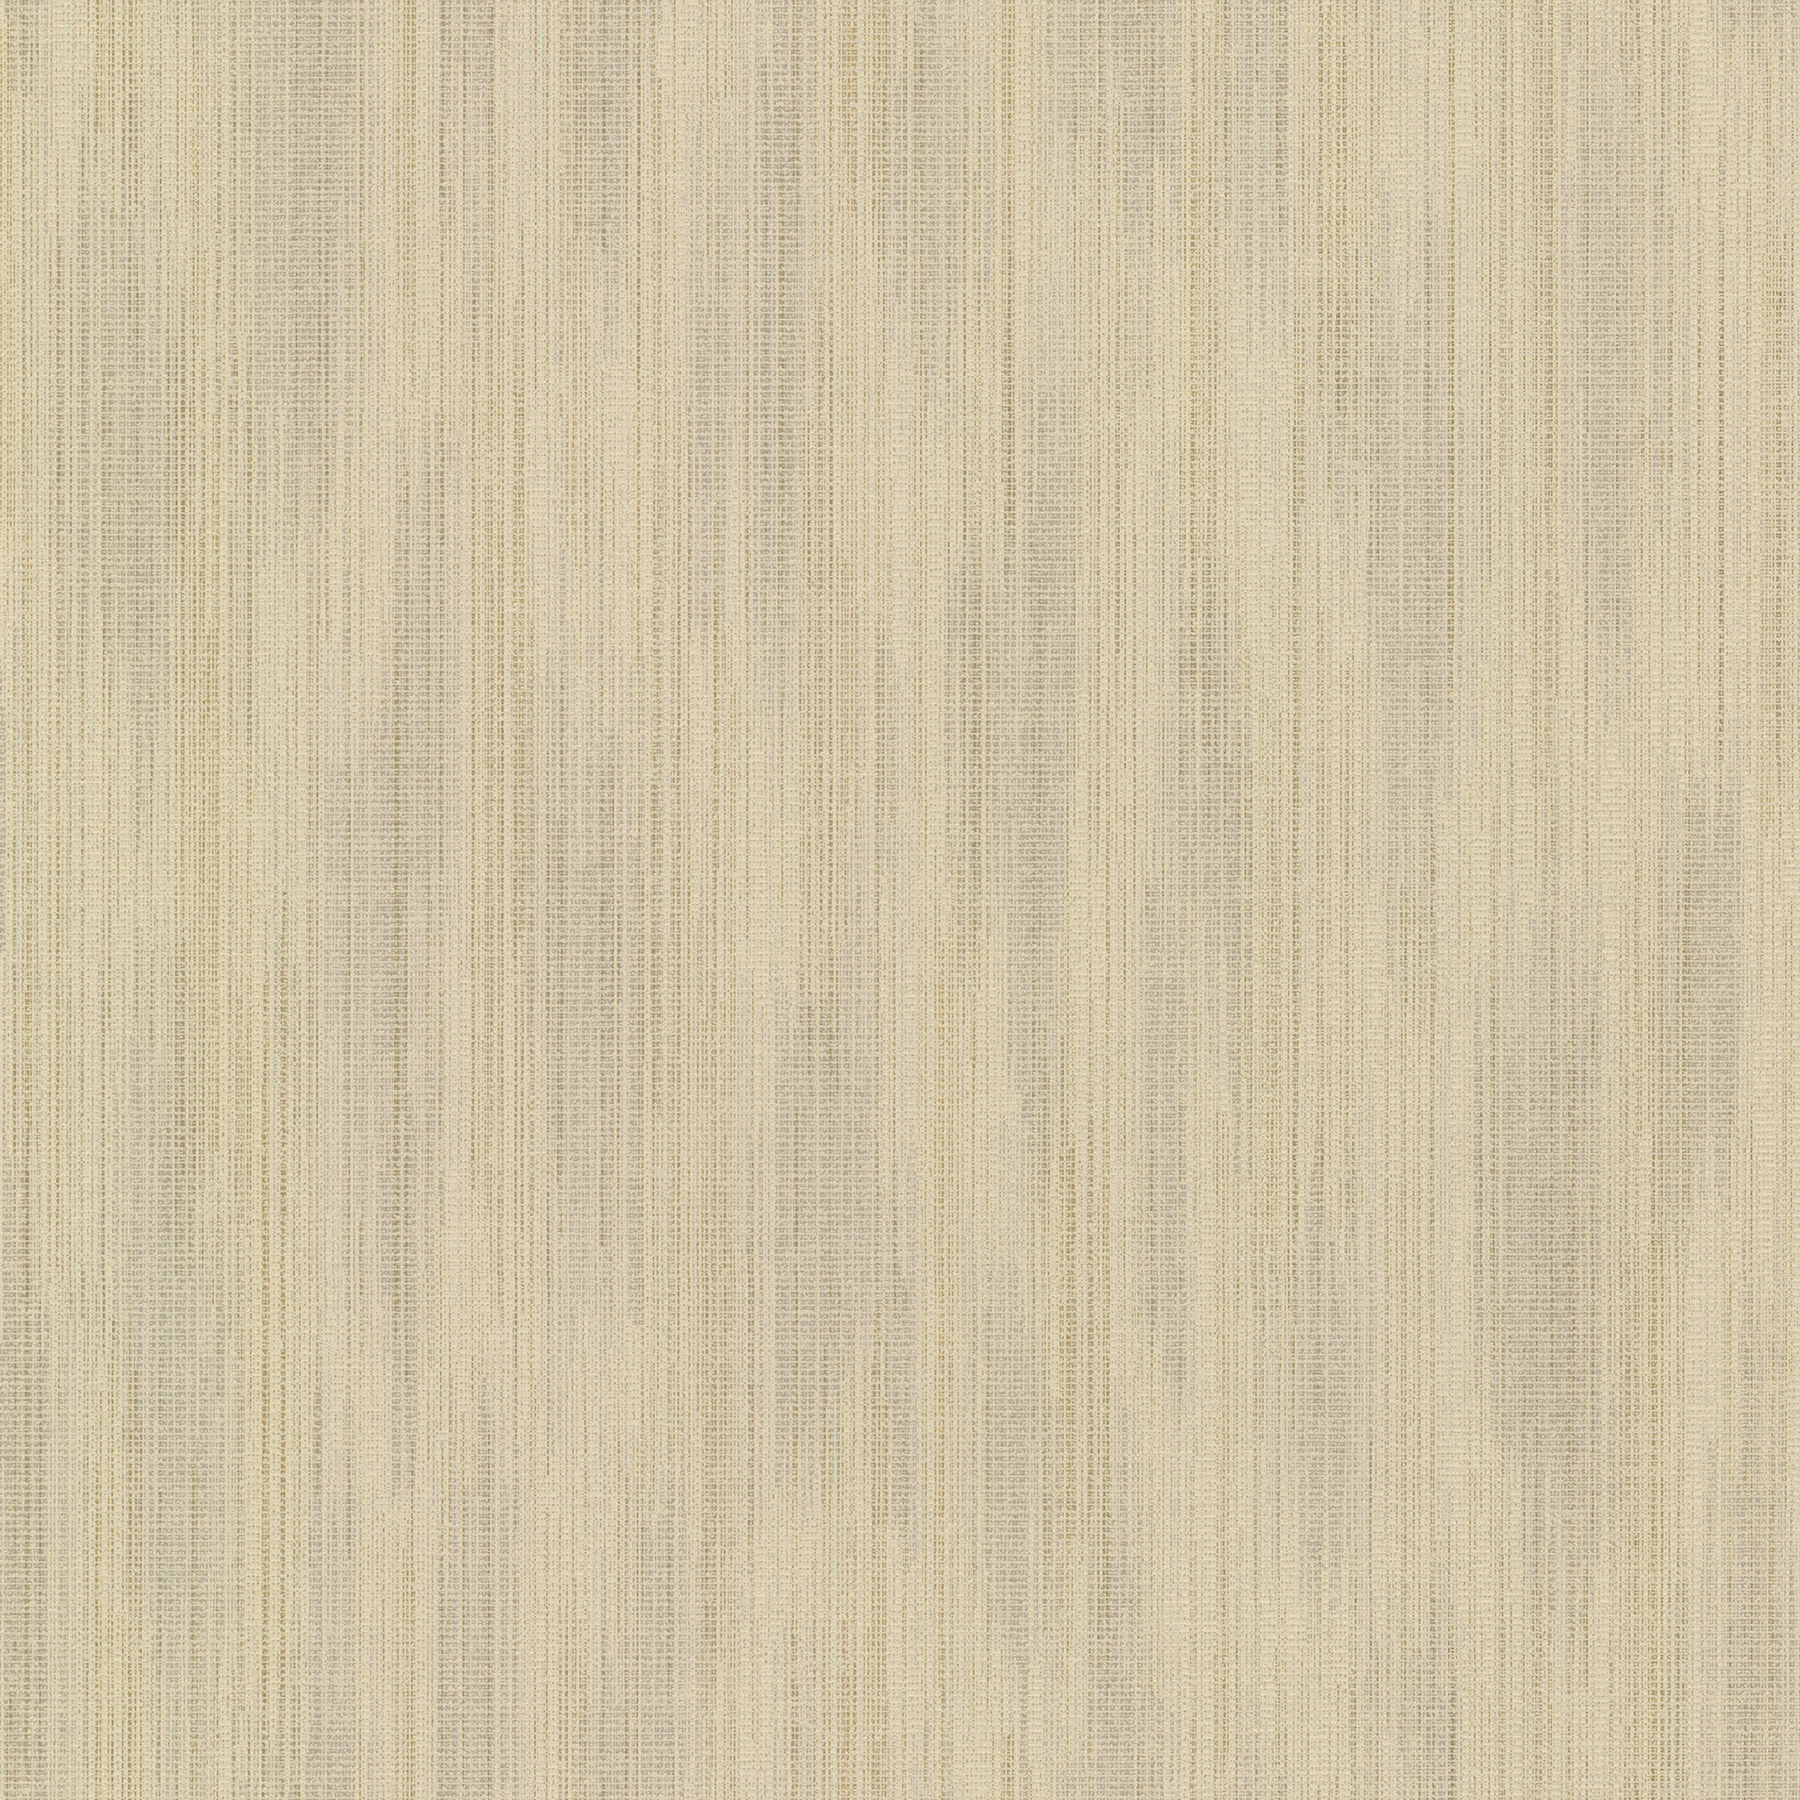 Picture of Blaise Gold Ombre Texture Wallpaper